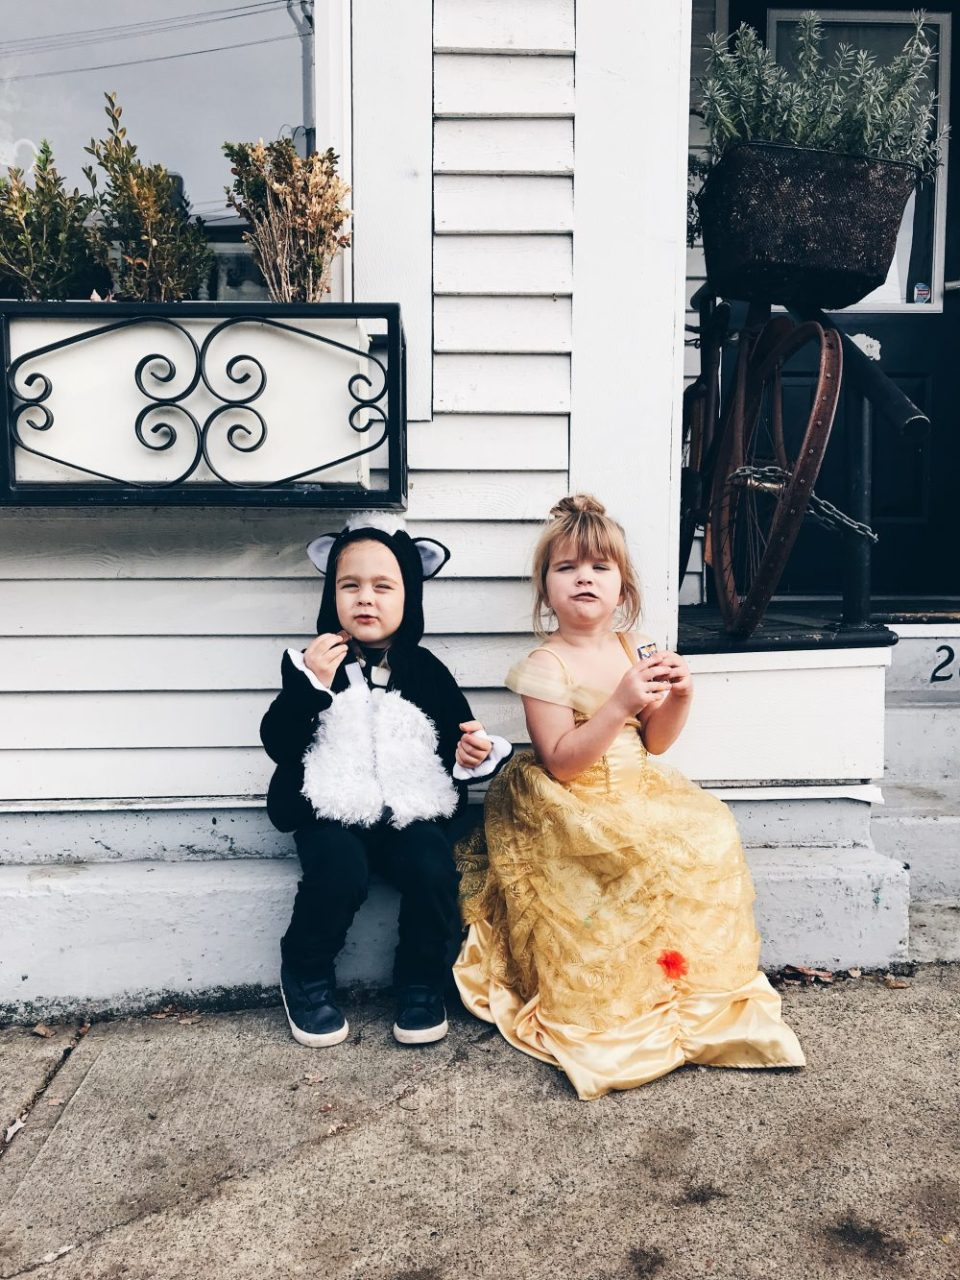 Belle and a Skunk | Downtown Abbotsord Trick or Treating 2017 Halloween Costumes